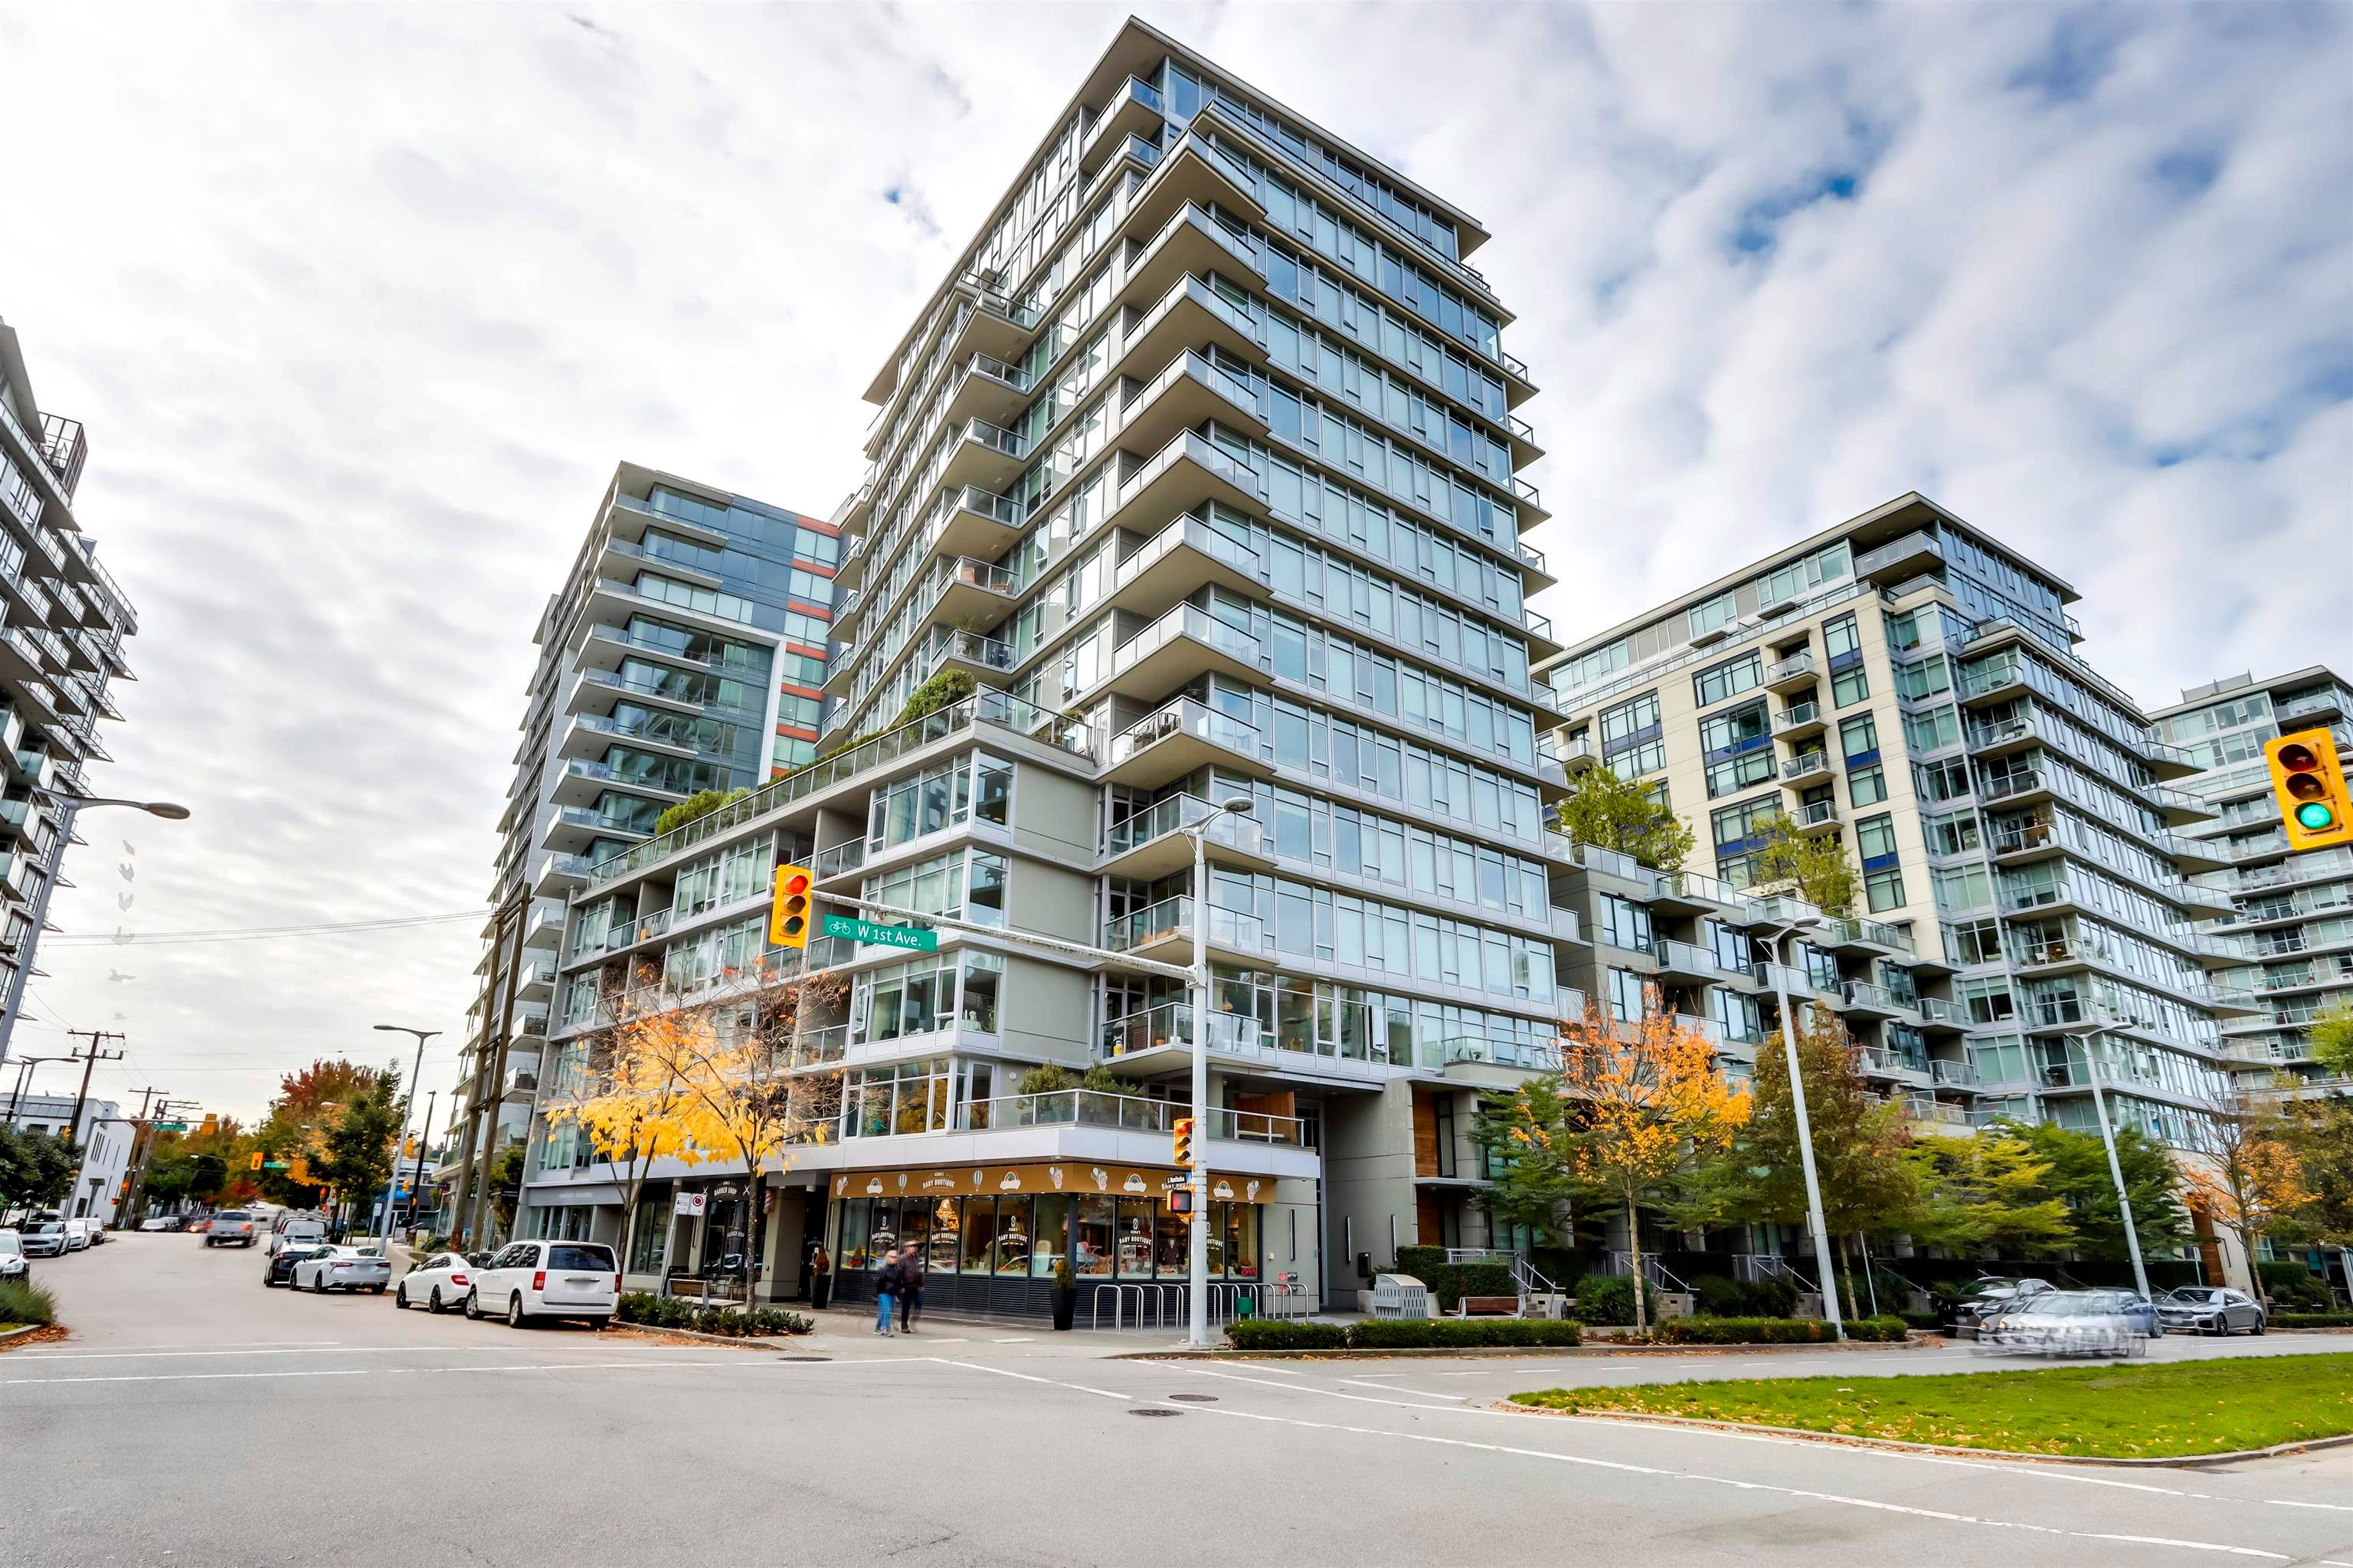 """Main Photo: 806 108 W 1ST Avenue in Vancouver: False Creek Condo for sale in """"Wall Centre False Creek"""" (Vancouver West)  : MLS®# R2625628"""